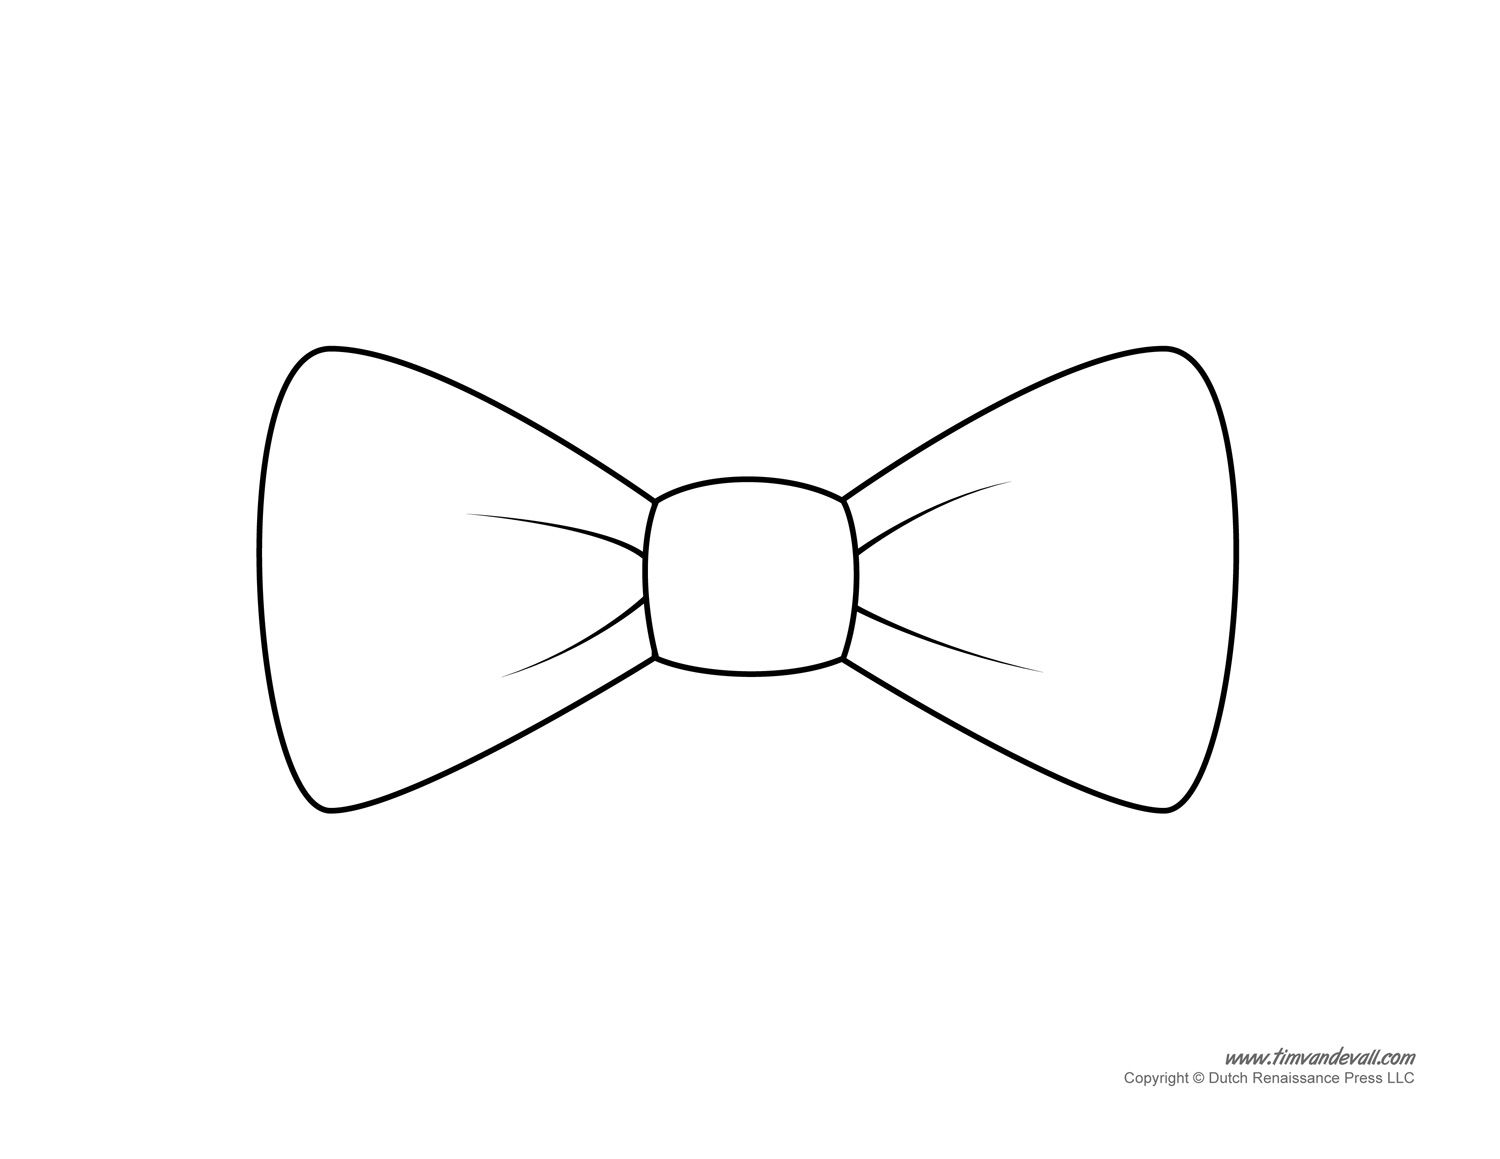 photo relating to Bow Tie Printable identify bow tie drawing Paper Bow Tie Templates Bow Tie